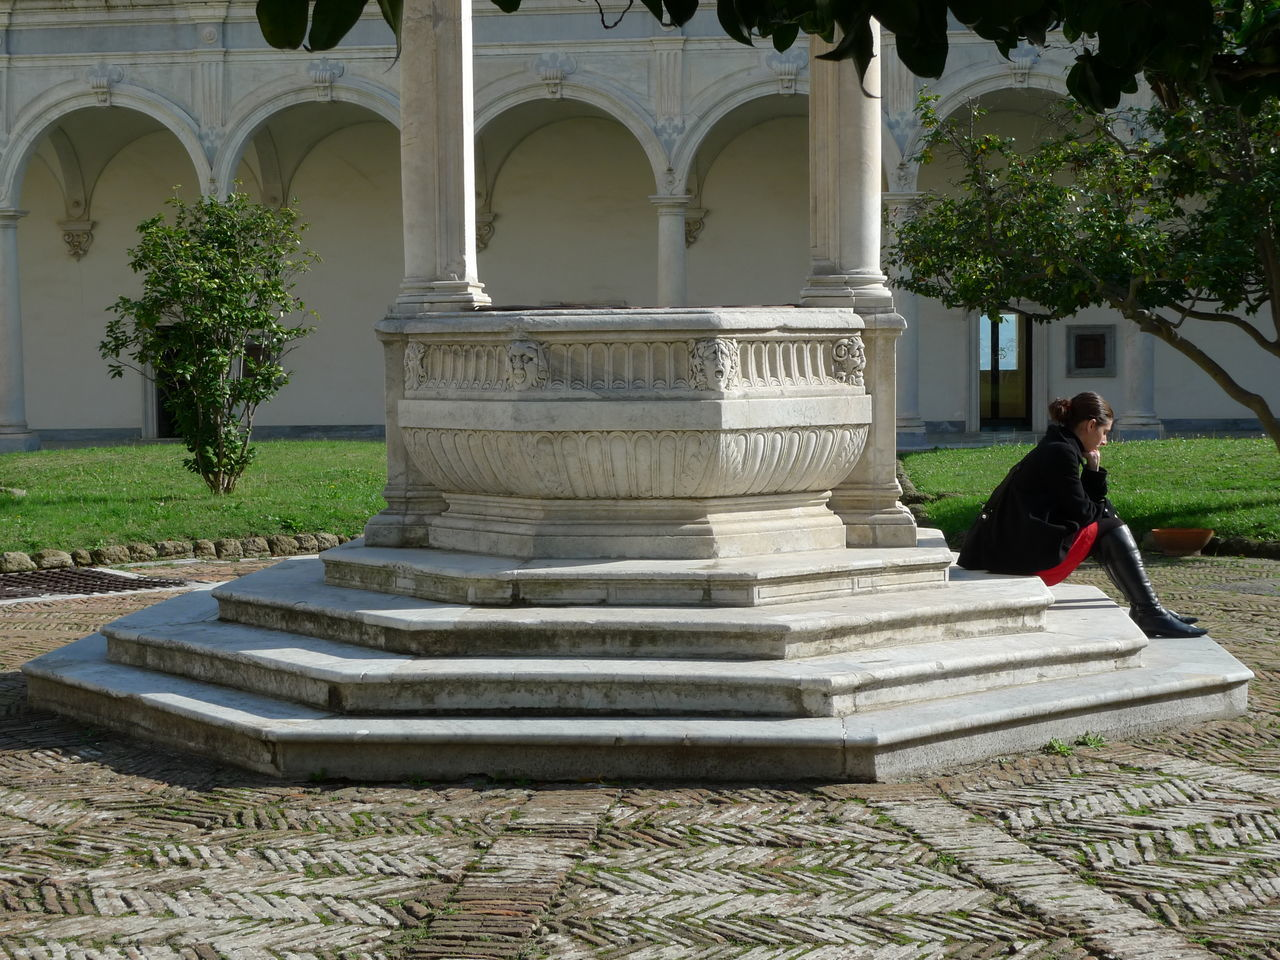 Adult Ancient Arch Architectural Column Architecture Building Exterior Built Structure Certosa San Martino Cloister Day Full Length History Lifestyles Naples, Italy Nature One Person Outdoors People Real People Staircase Steps Steps And Staircases Travel Destinations Tree